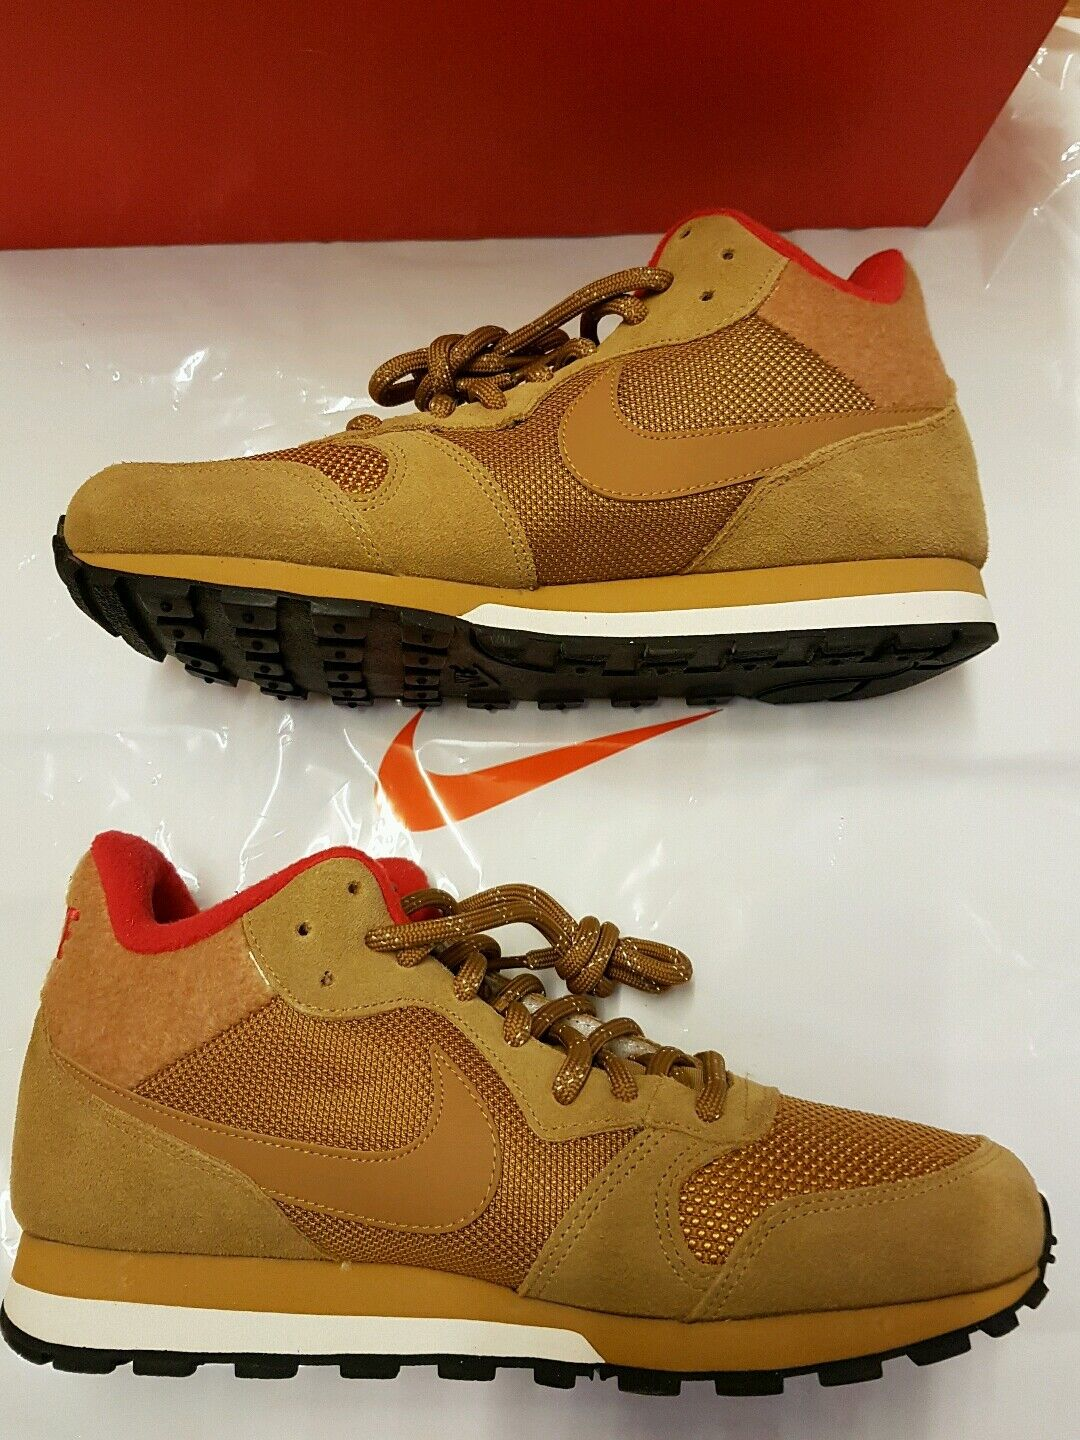 Bnwt men's Nike MD Runner 2 MID trainers Taille6 (EUR 40)